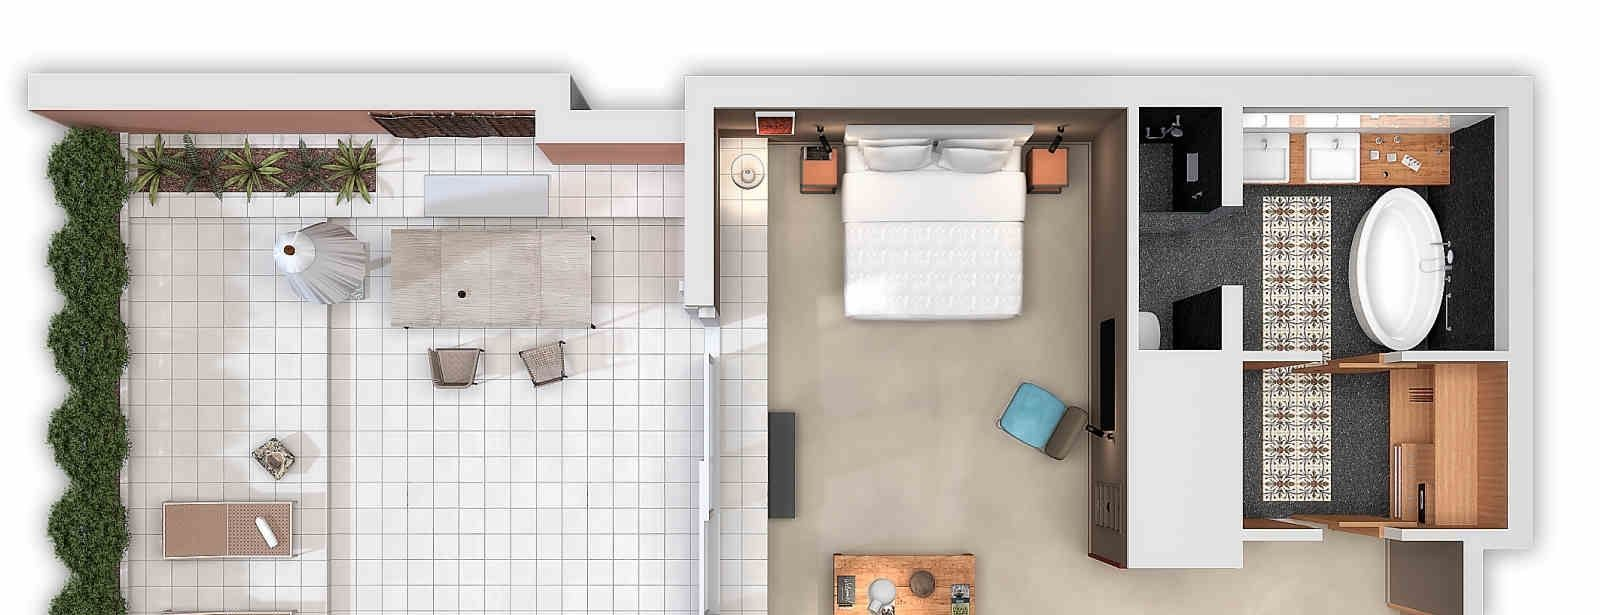 Grand Terrace Suite floorplan